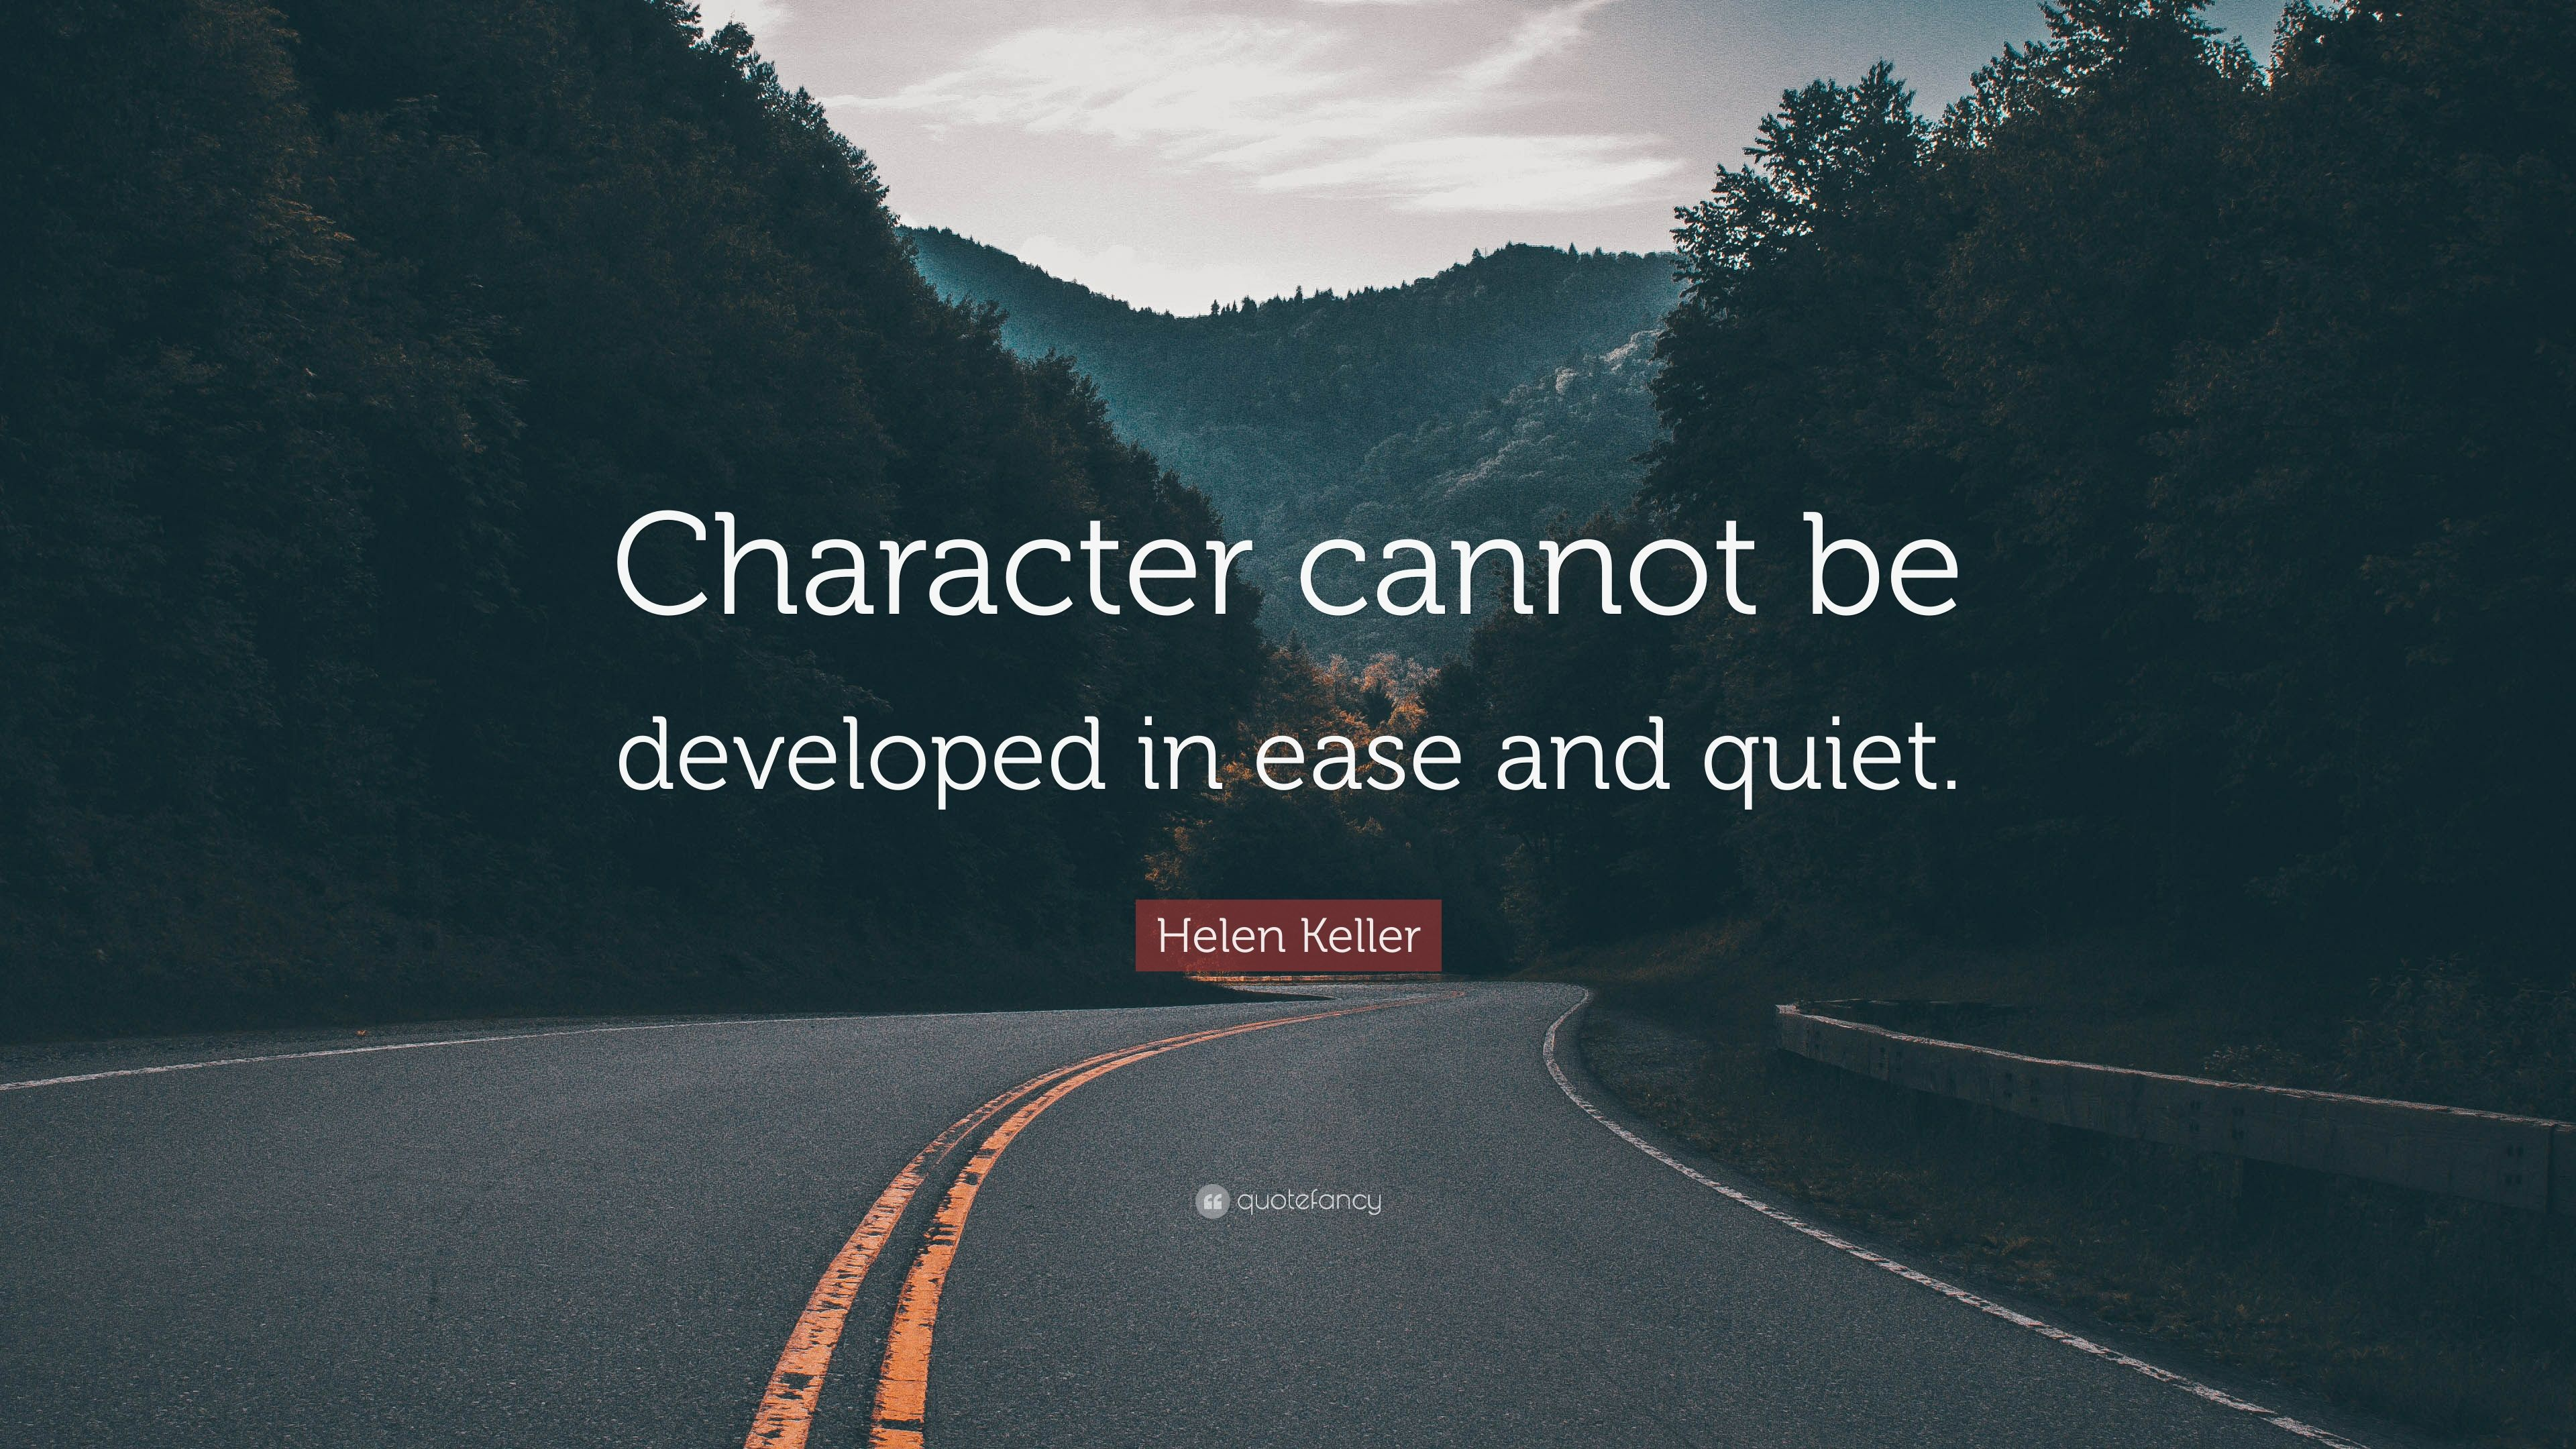 Helen keller quote character cannot be developed in ease and quiet helen keller quote character cannot be developed in ease and quiet altavistaventures Image collections